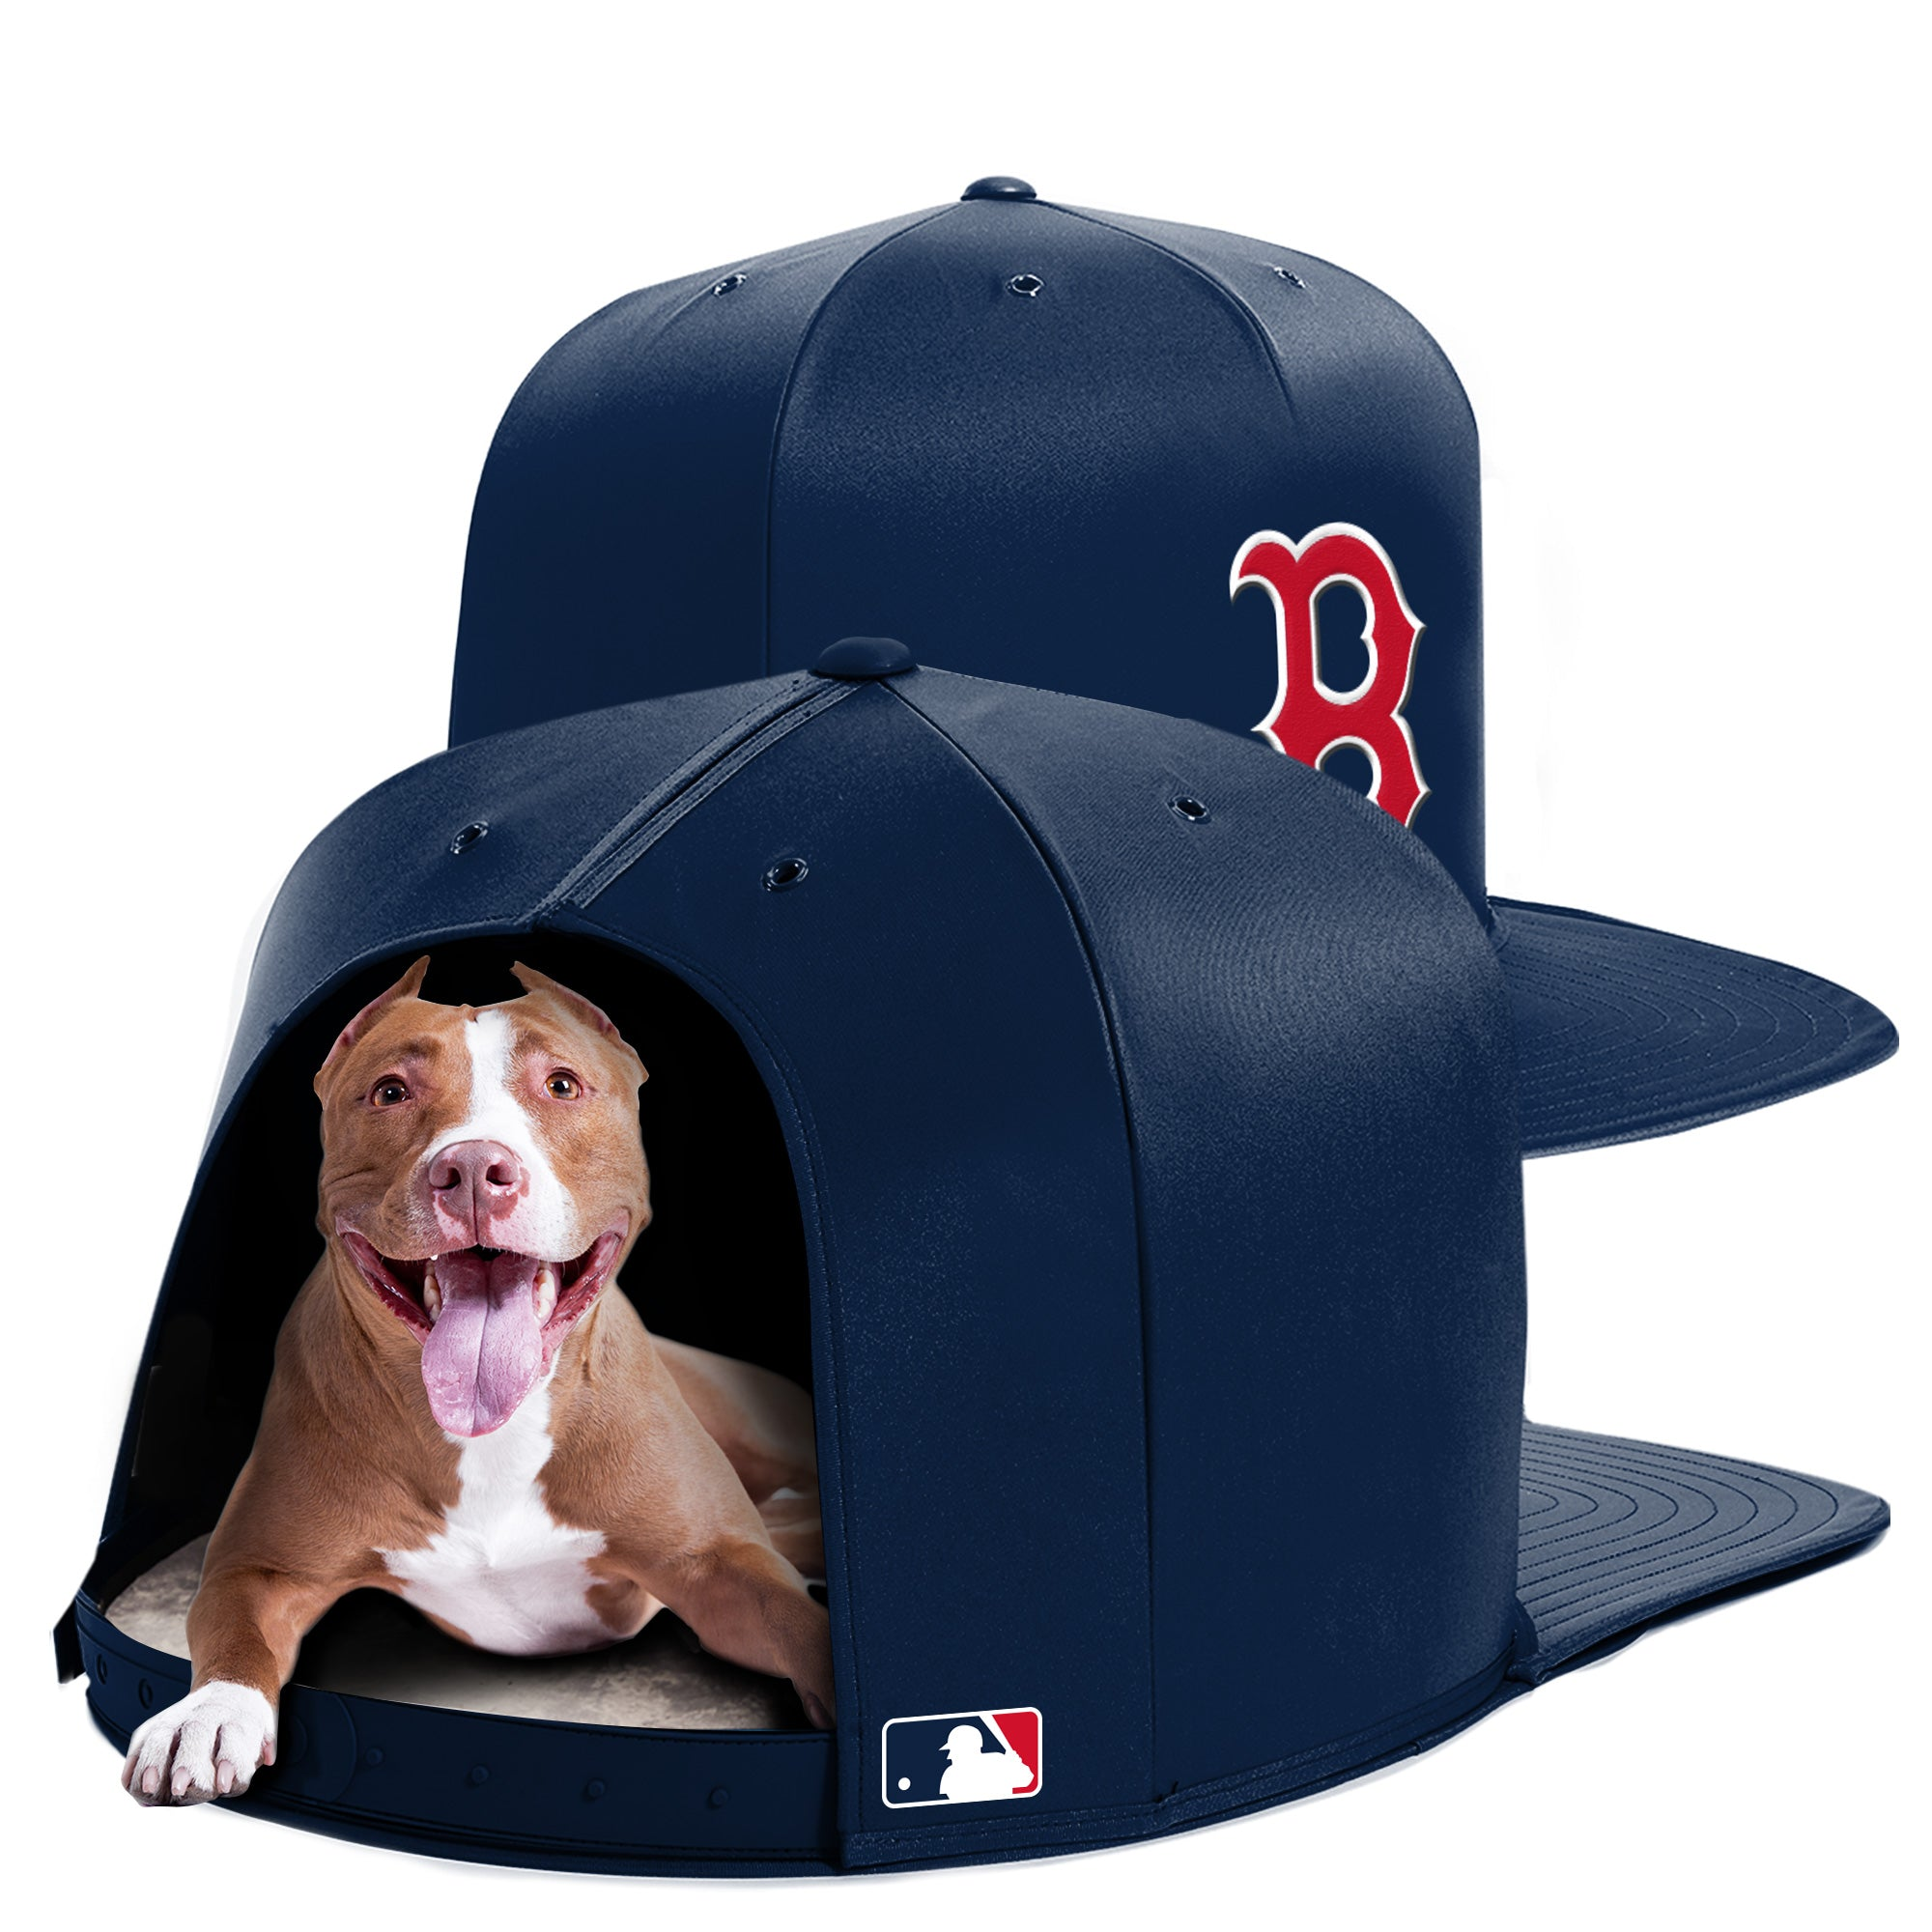 Nap Cap - Boston Red Sox - Pet Bed